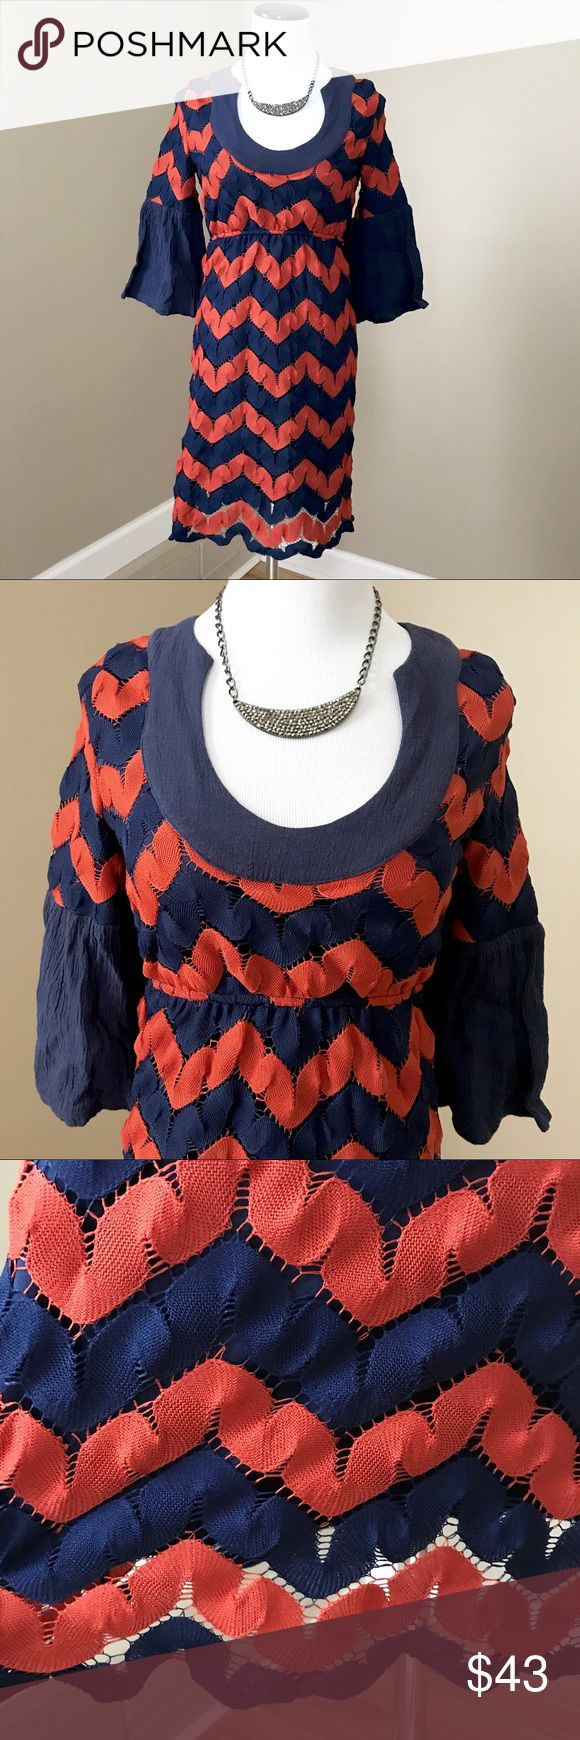 "♥️Judith March Chevron Bohemian Hippie Dress Size Small. Chevron Navy and Burnt Orange crocheted overlay. Bell sleeves. Low neck. Stretches under bust. 34"" long. Good condition. Judith March Dresses Midi"